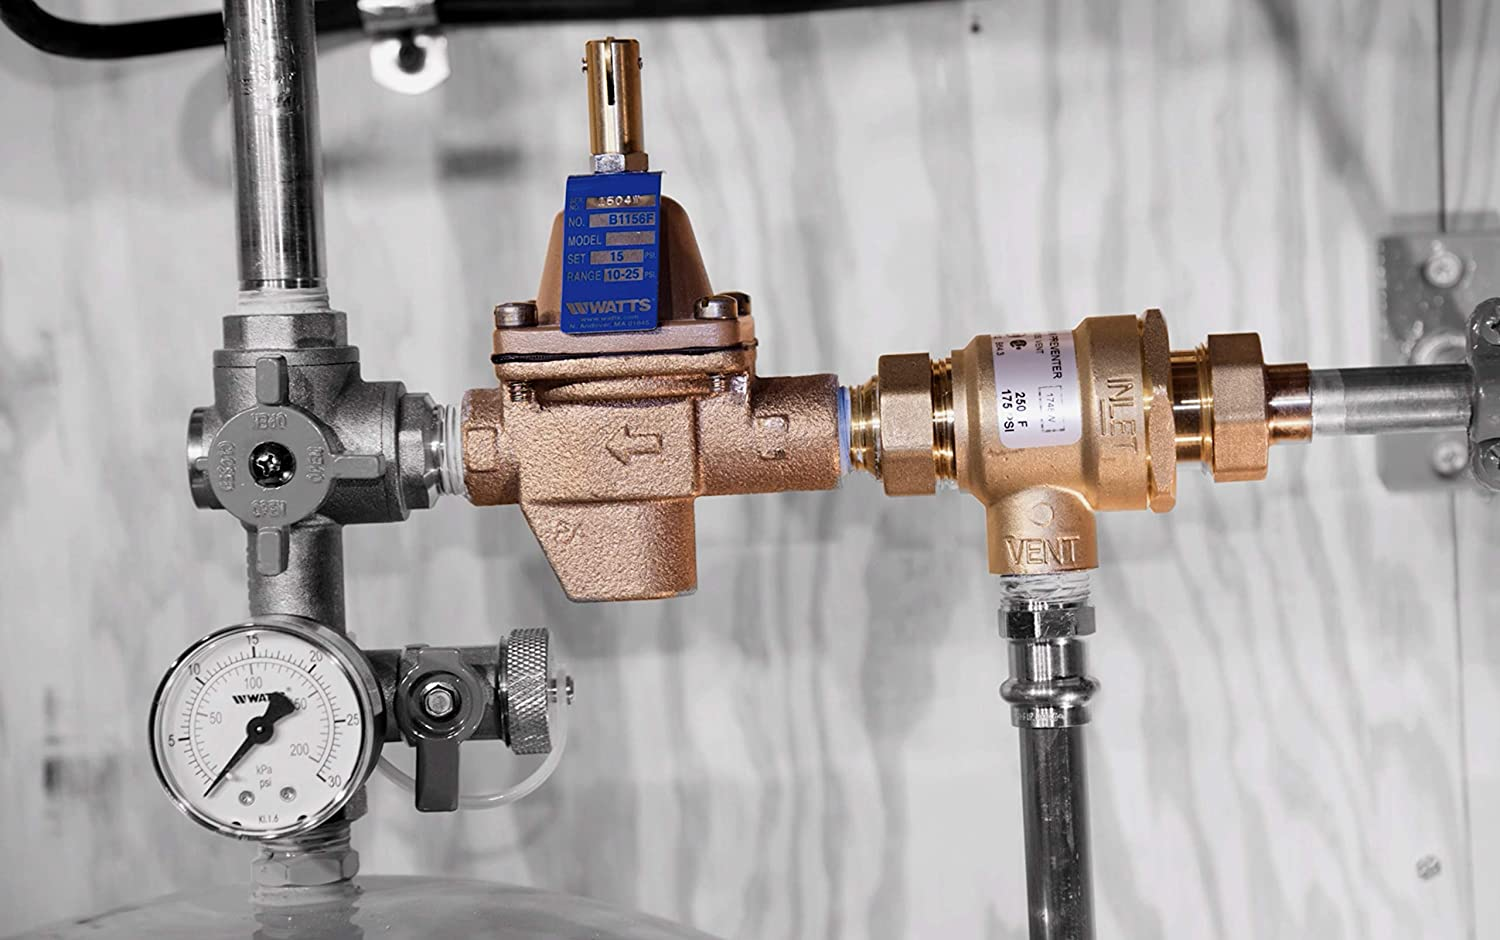 B911S-M3 Watts Premier Automatic Fill Valve for Hot Water Boiler